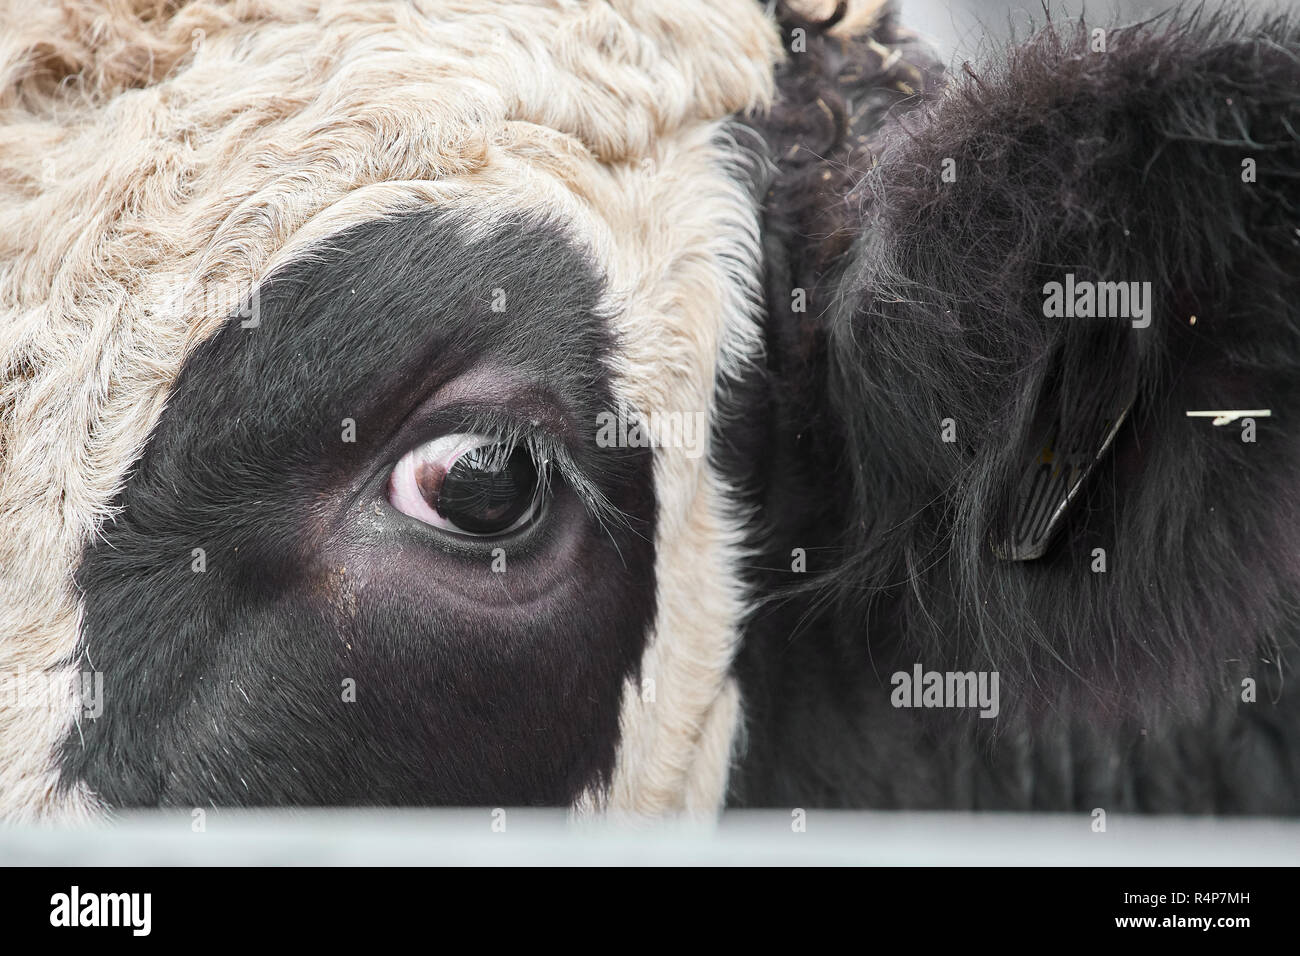 Uppingham, Rutland, UK. 28th November 2018. Bullock at the annual christmastime fatstock competition of primped and preened pigs, sheep and cattle, in the market square at Uppingham, Rutland, England on Wednesday 28th November 2018 Credit: Michael Foley/Alamy Live News - Stock Image